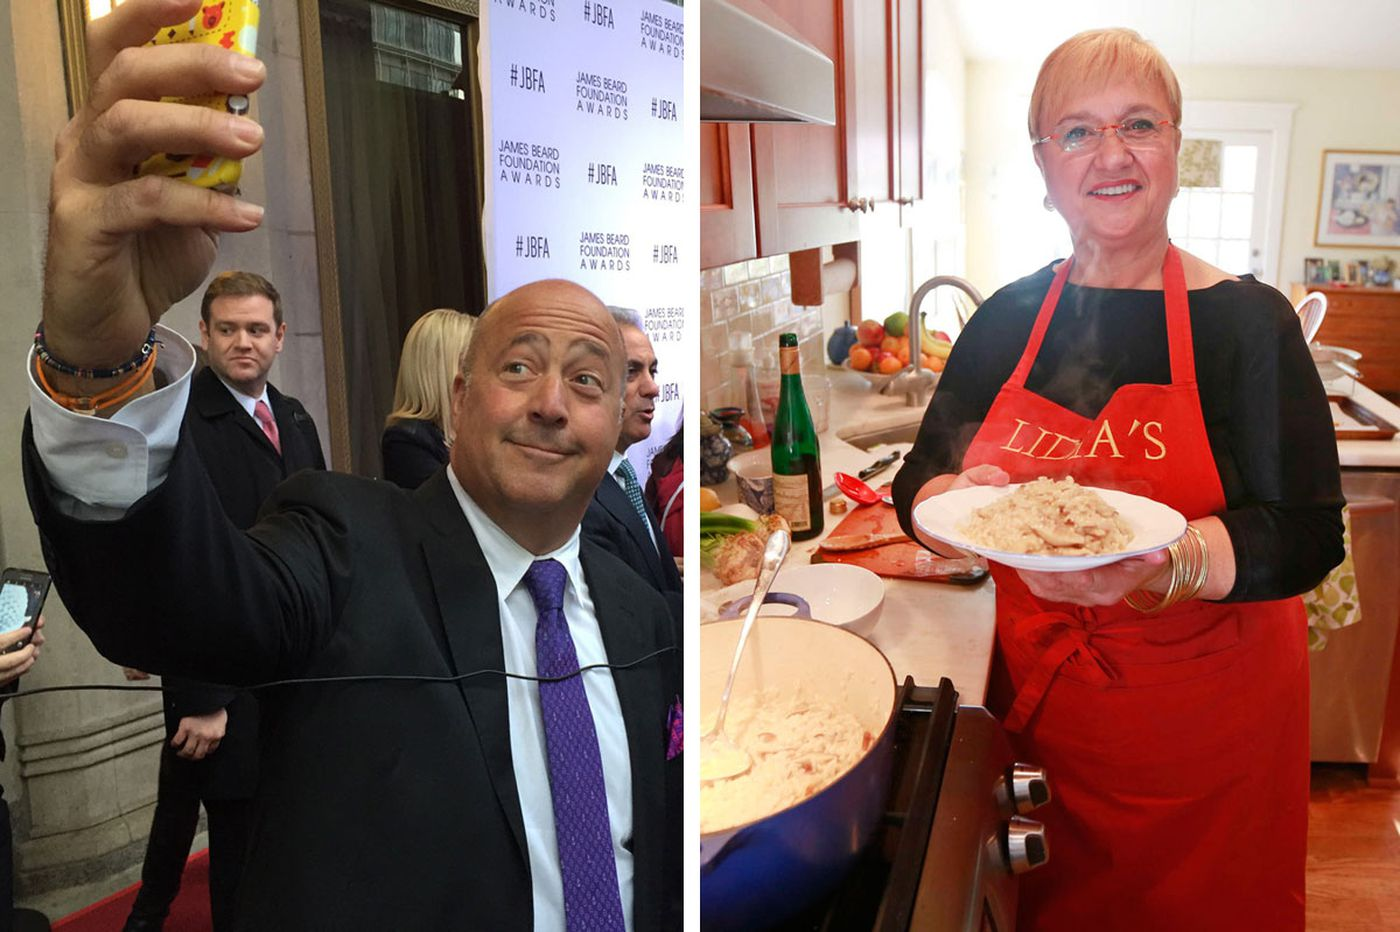 See food personalities Andrew Zimmern and Lidia Bastianich